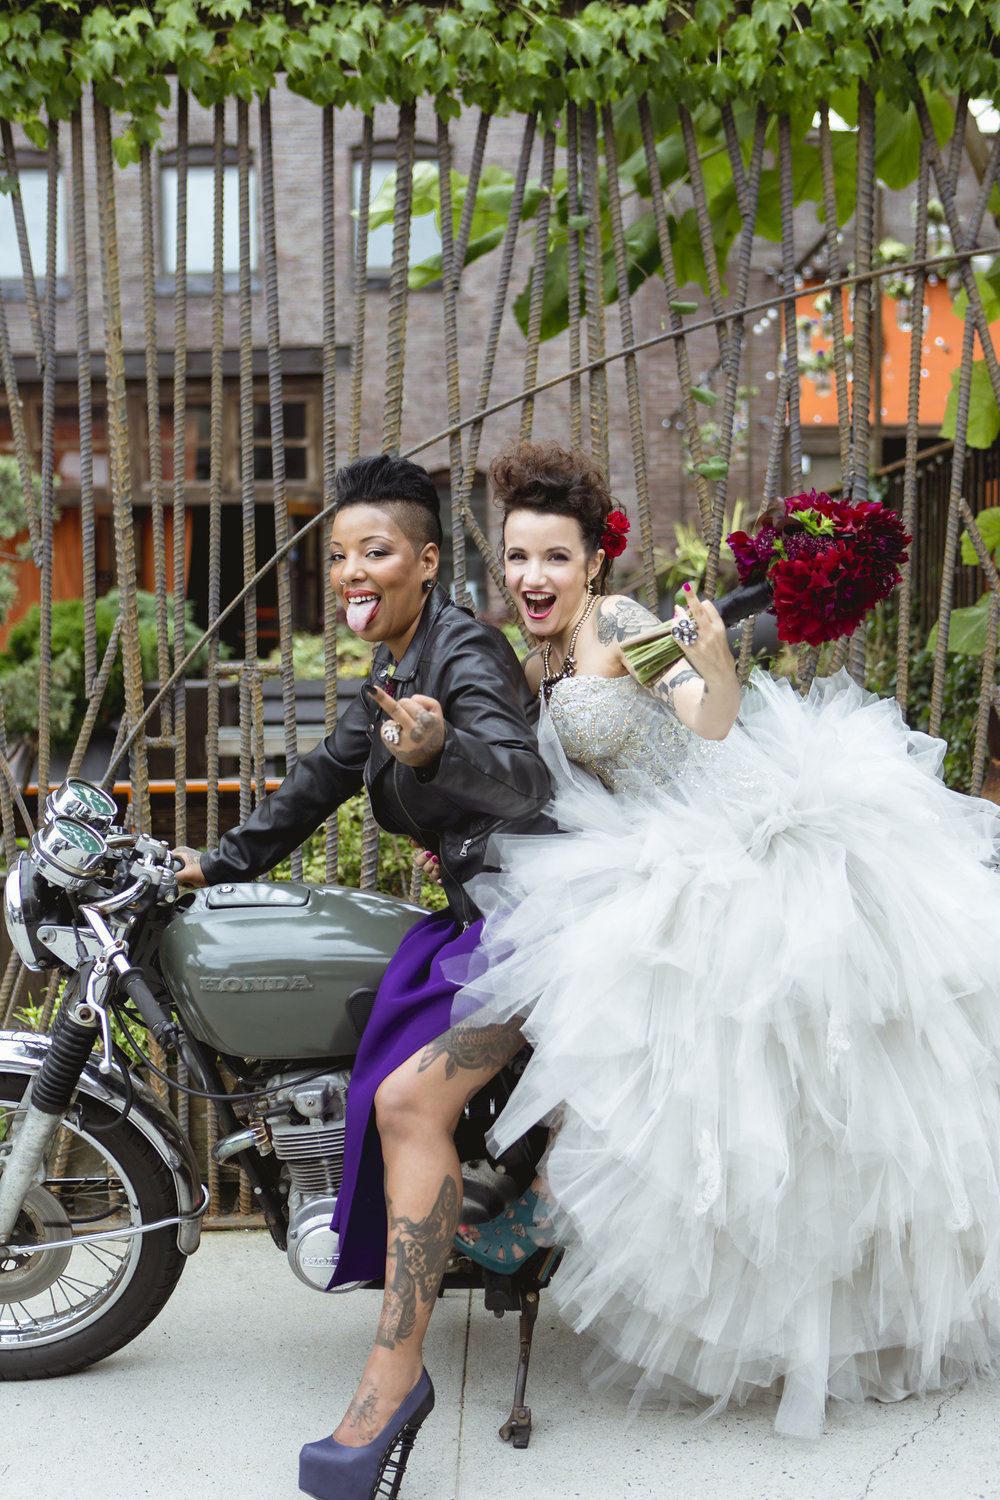 two brides flipping the bird on a motorcycle.